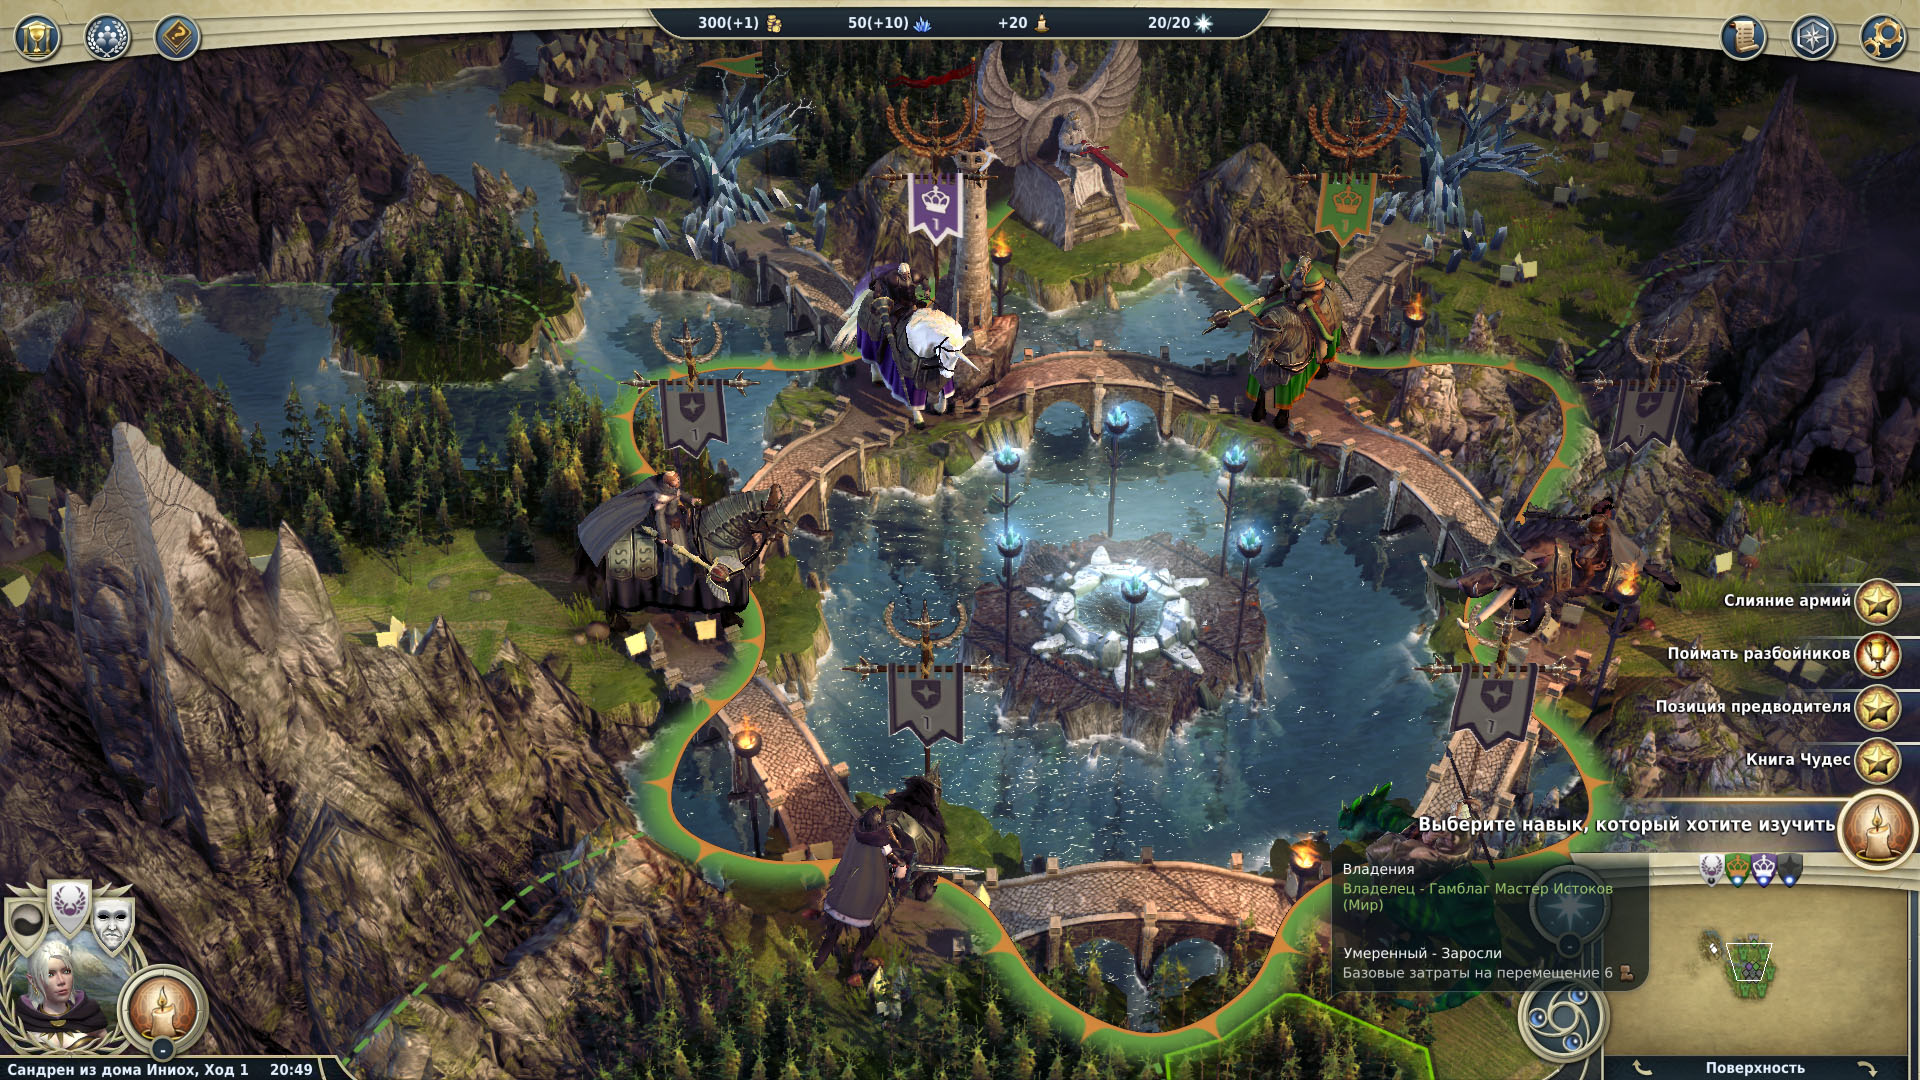 Age of Wonders 3: Deluxe Edition [v 1.704 + 4 DLC] (2014/PC/Русский), RePack от R.G. Механики